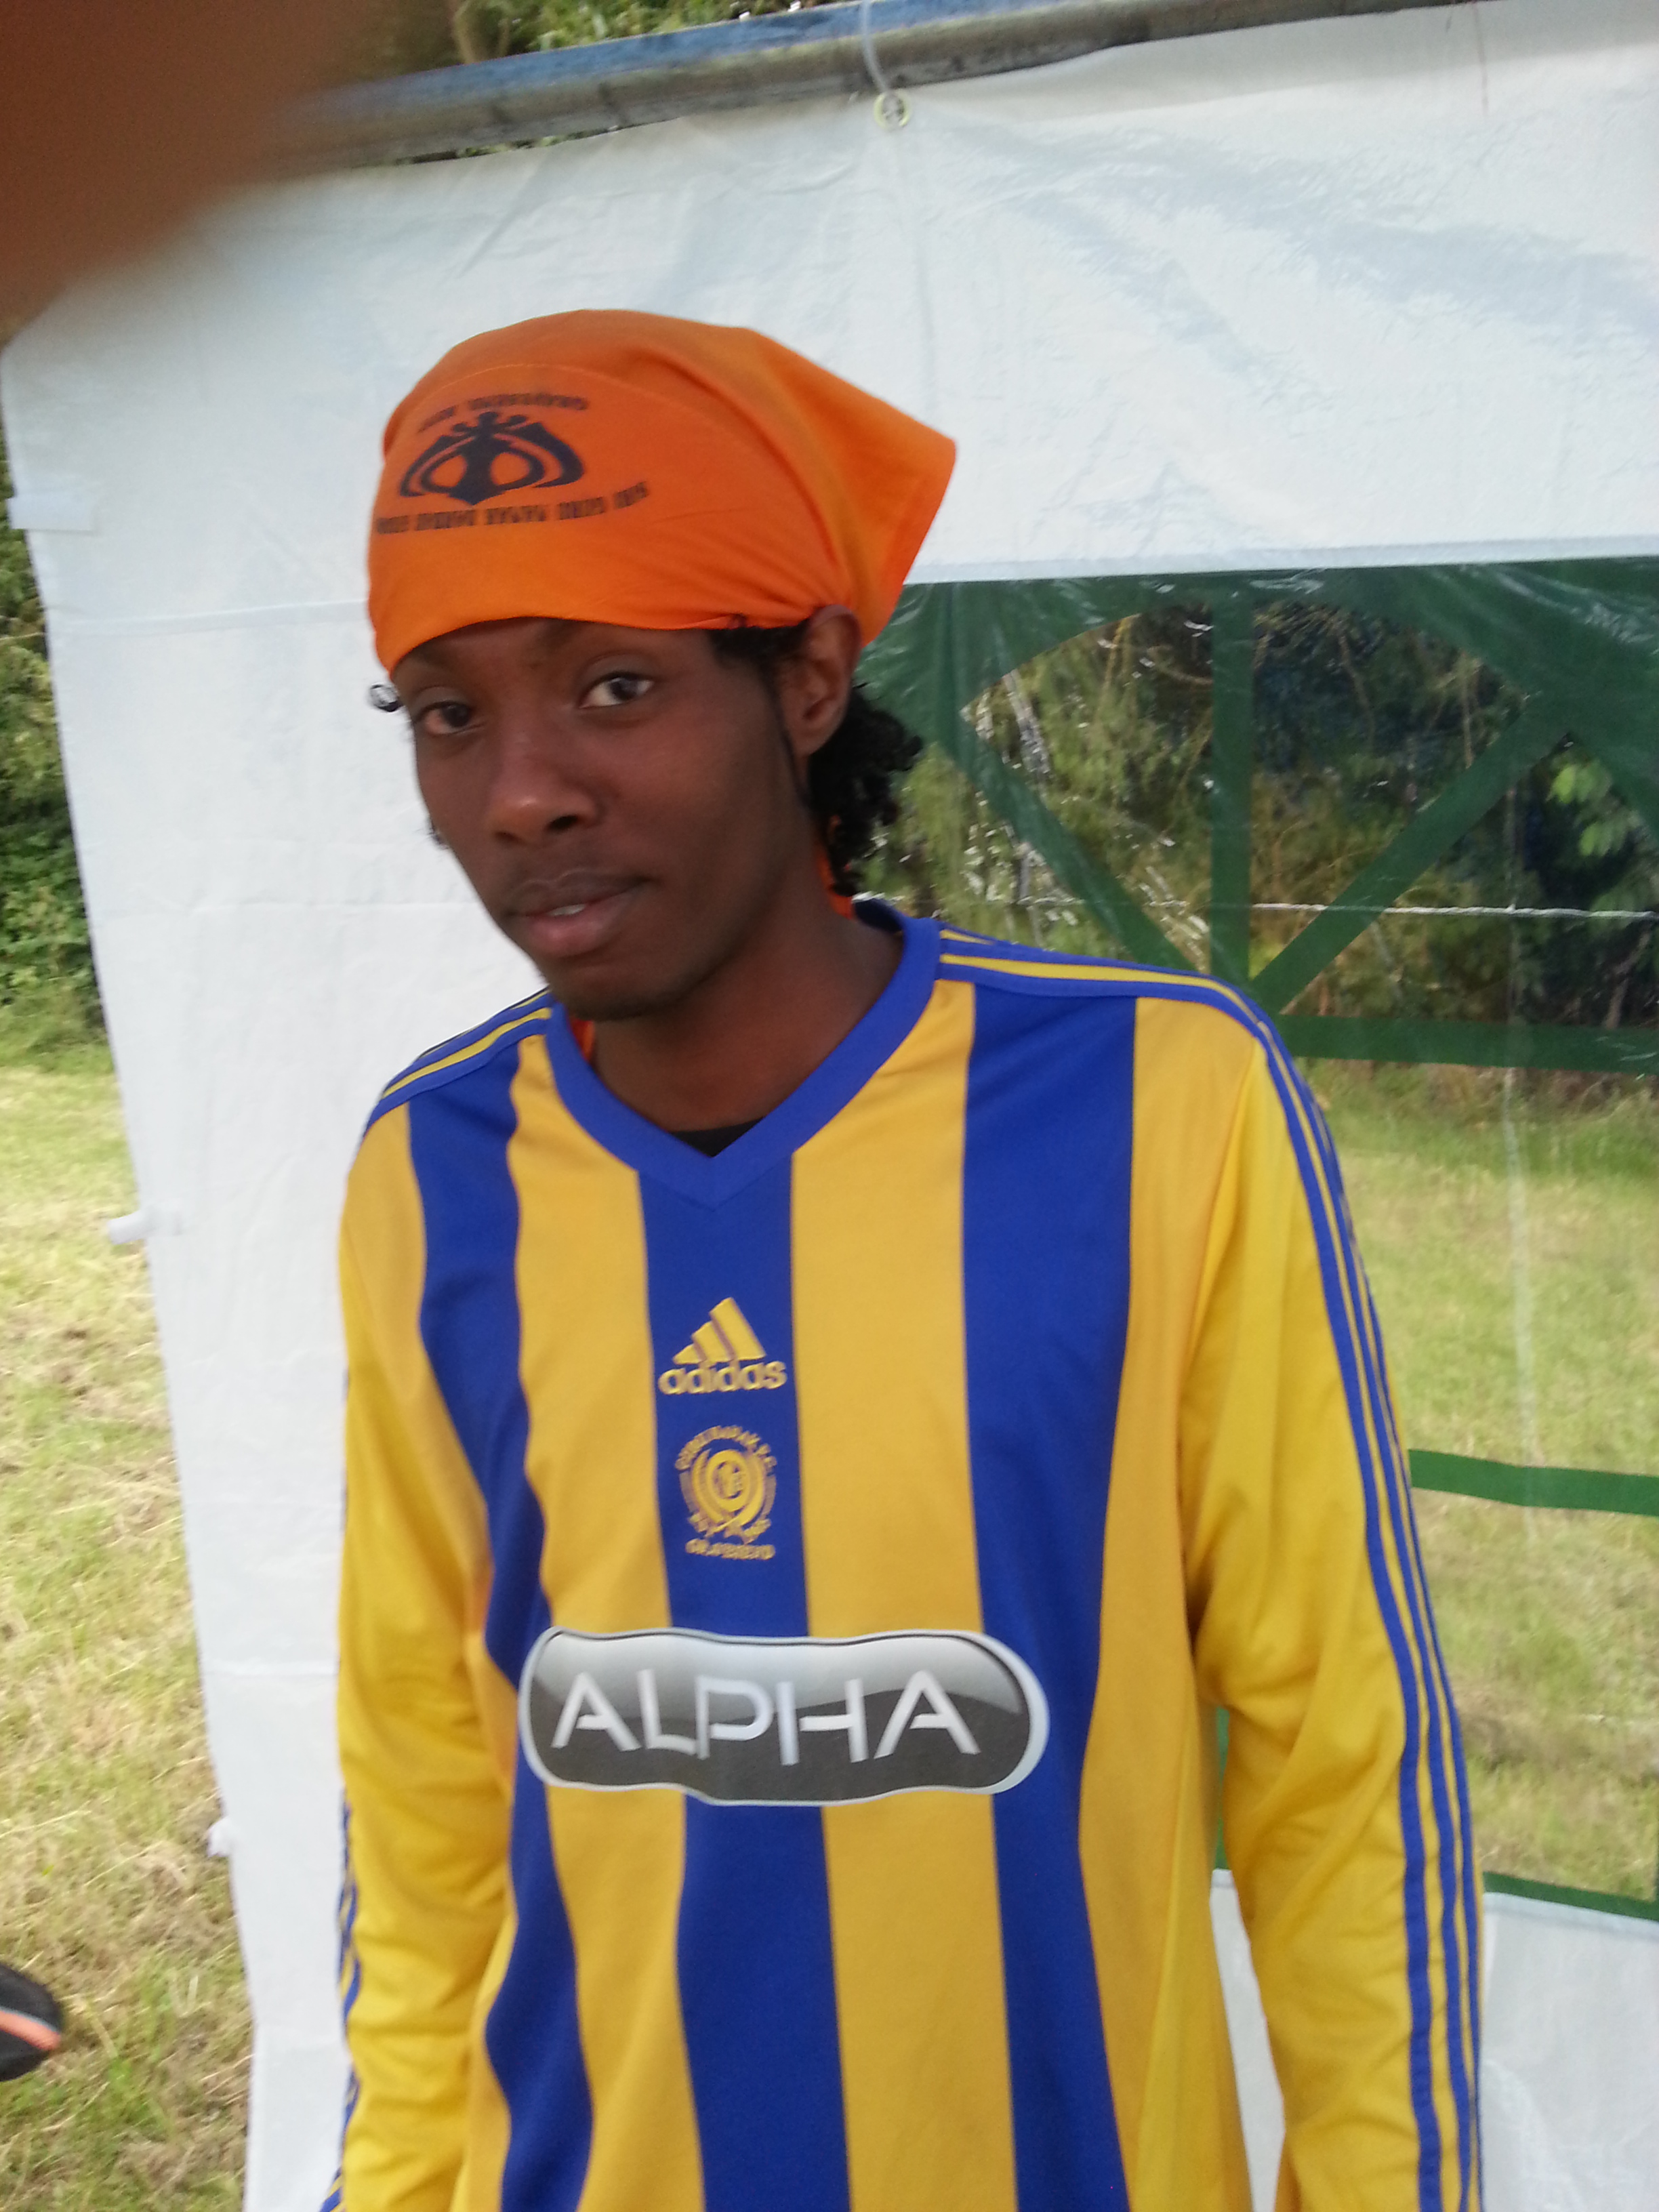 Rasta Sikh (Michael Barhane) at Derby Tournament July 2015